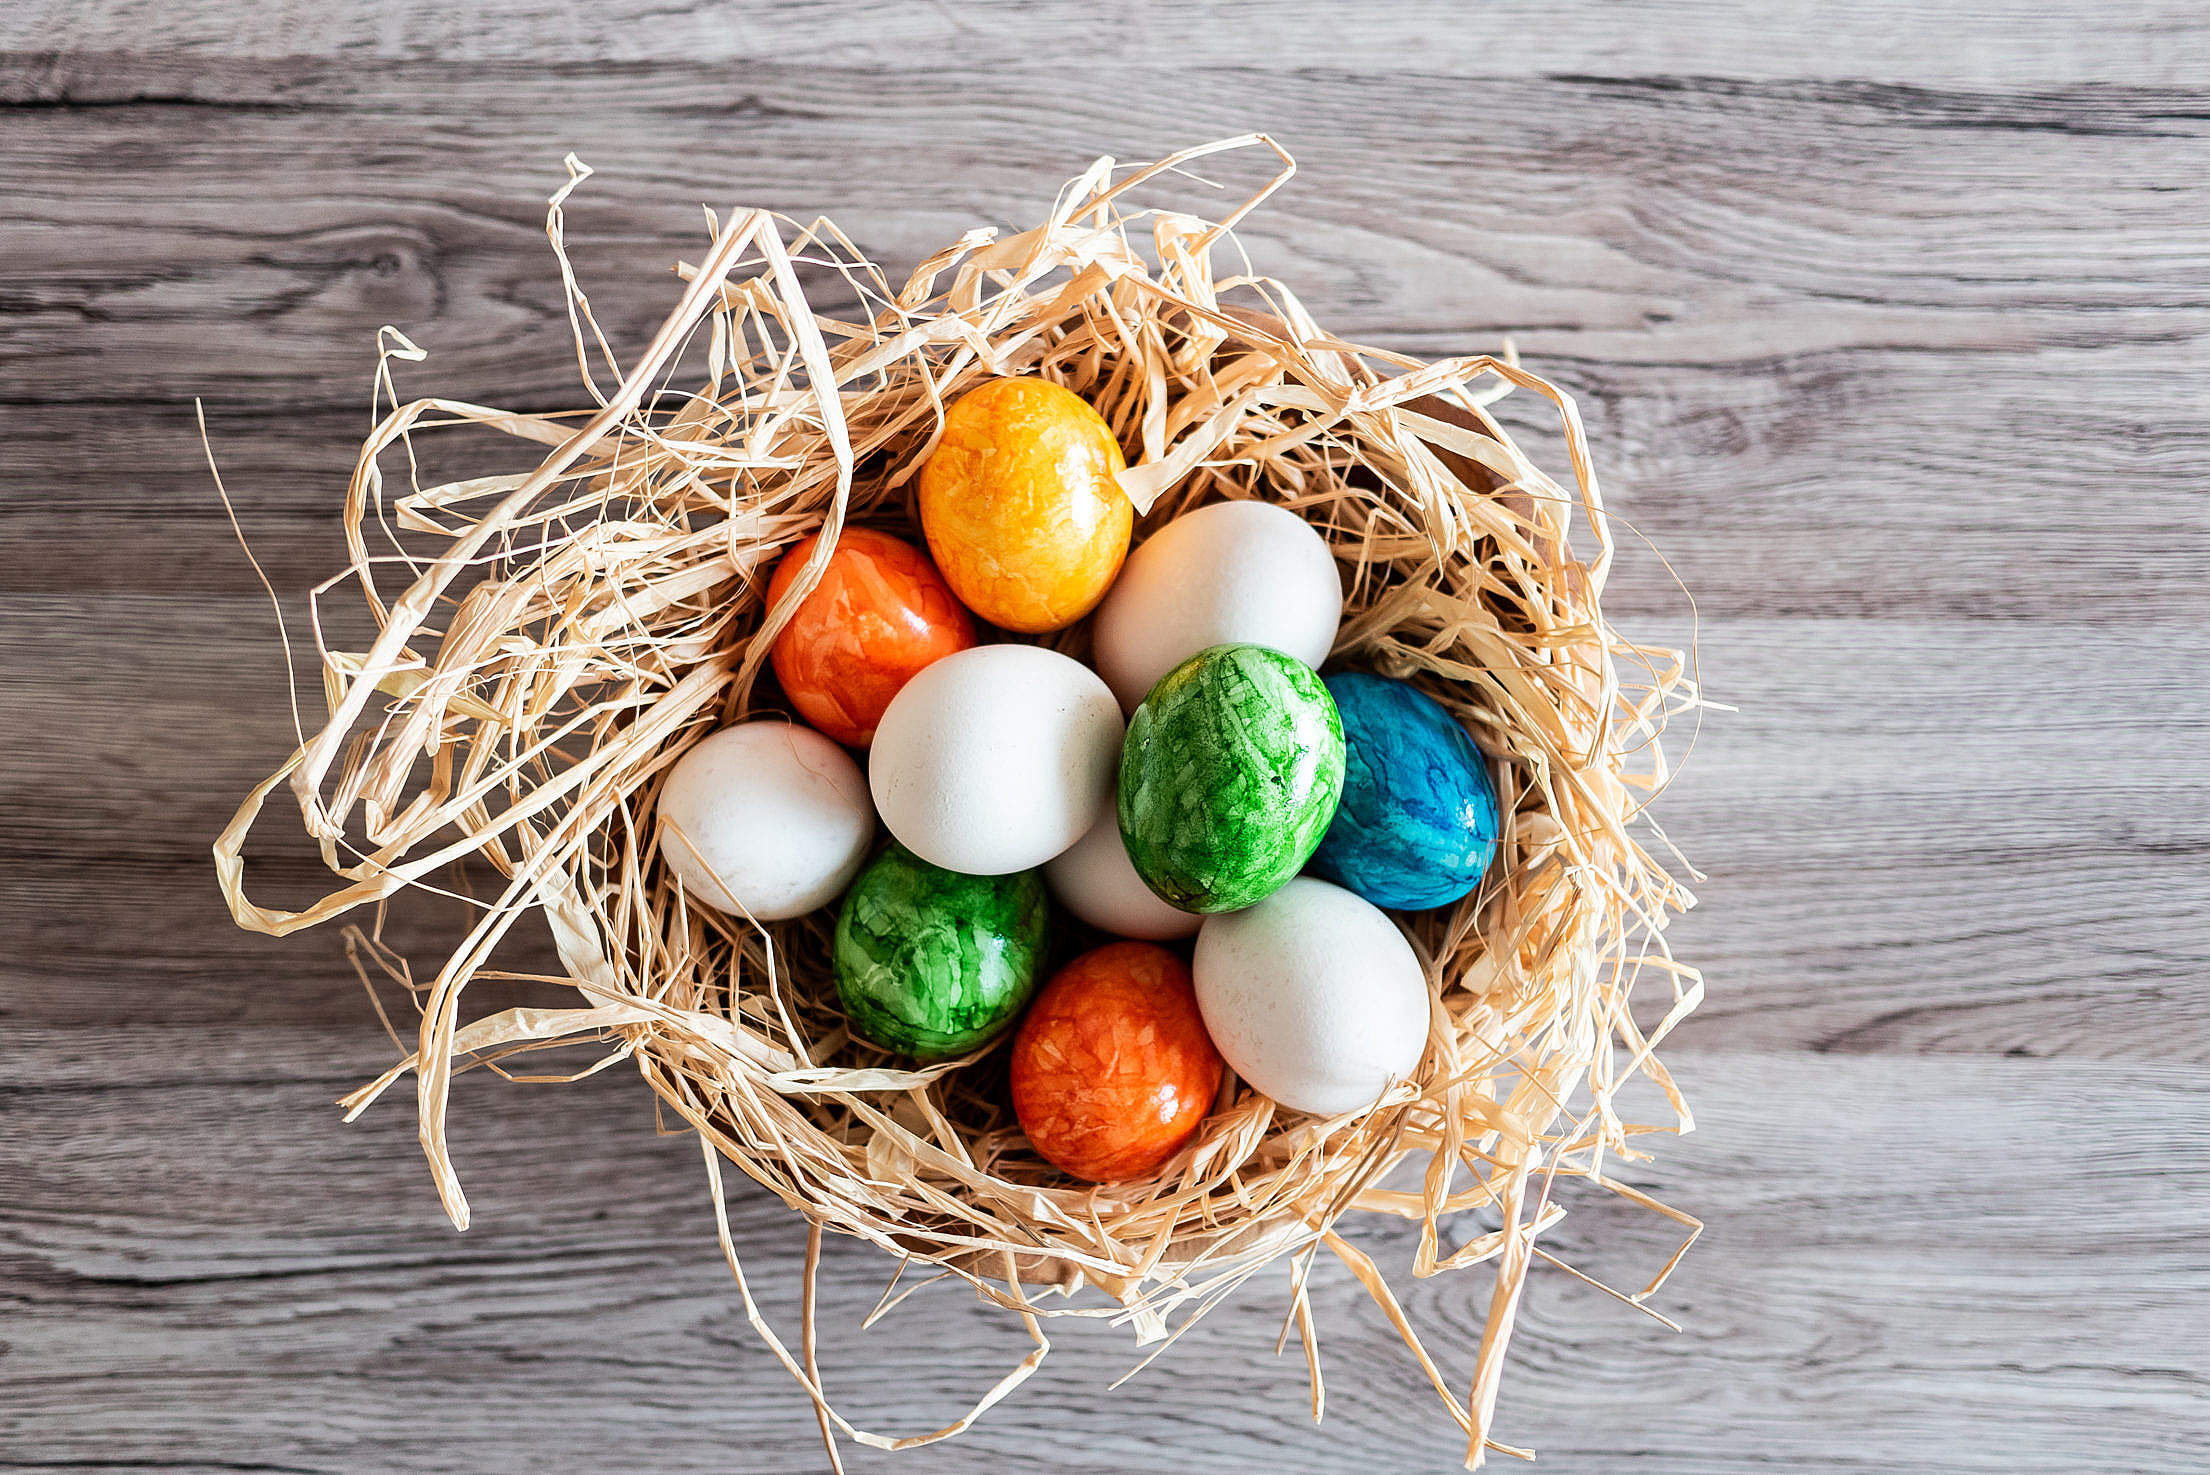 Basket Full of Perfect Easter eggs Free Stock Photo